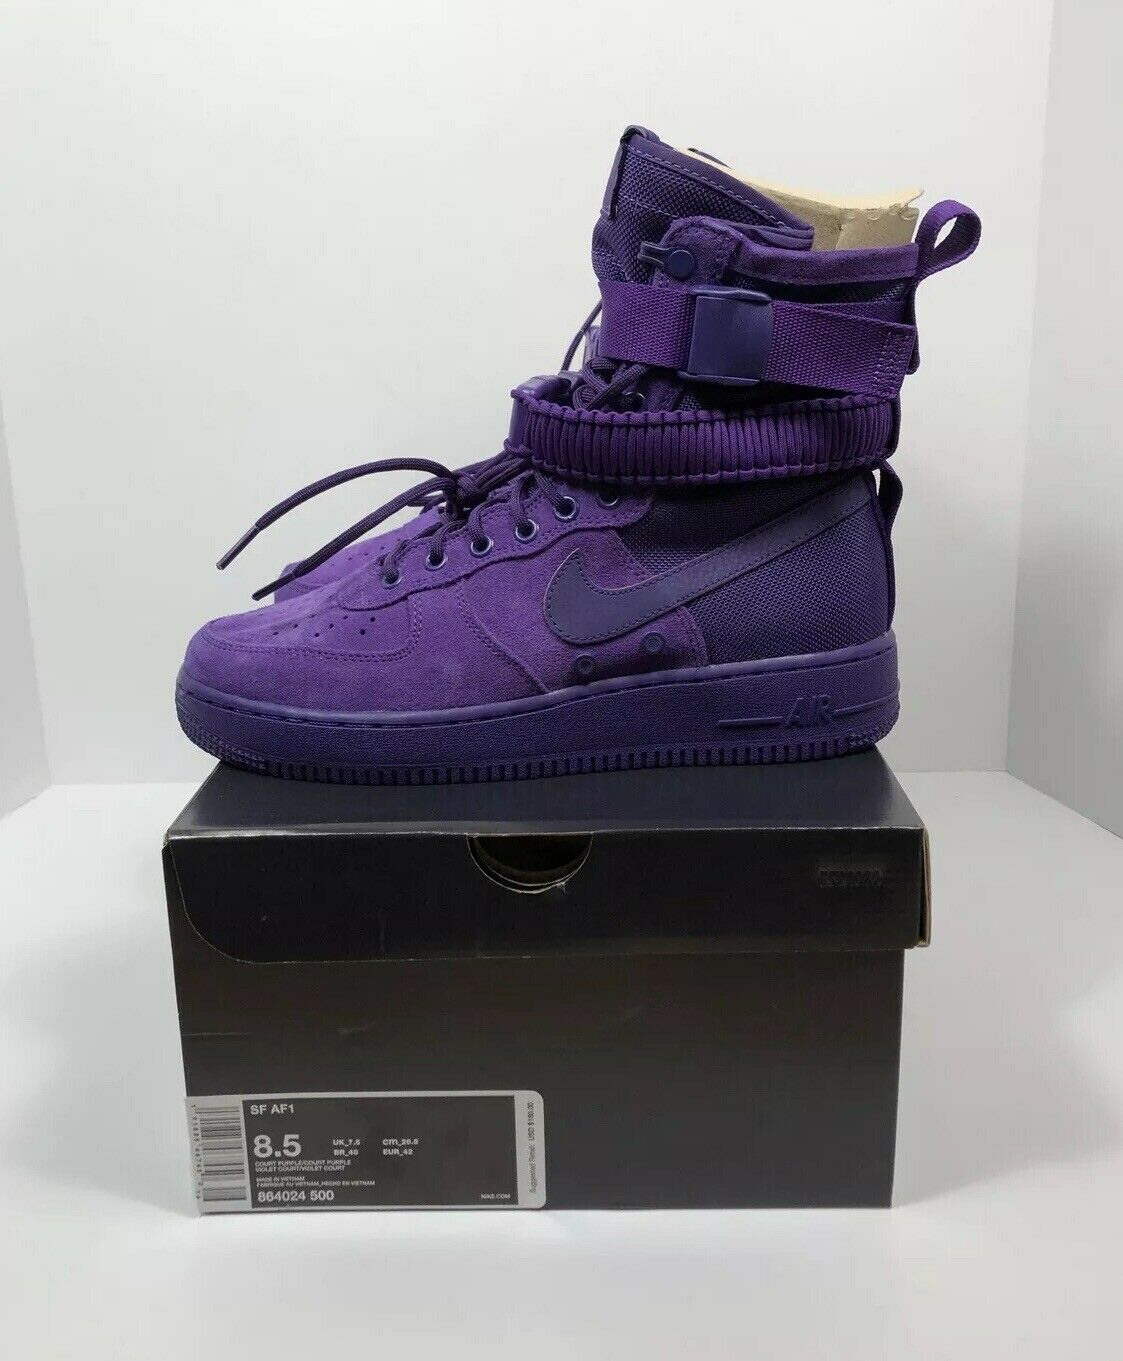 Nike Special Force Air Force 1 Court Purple Mens Size 8.5 Womens Size 10  150